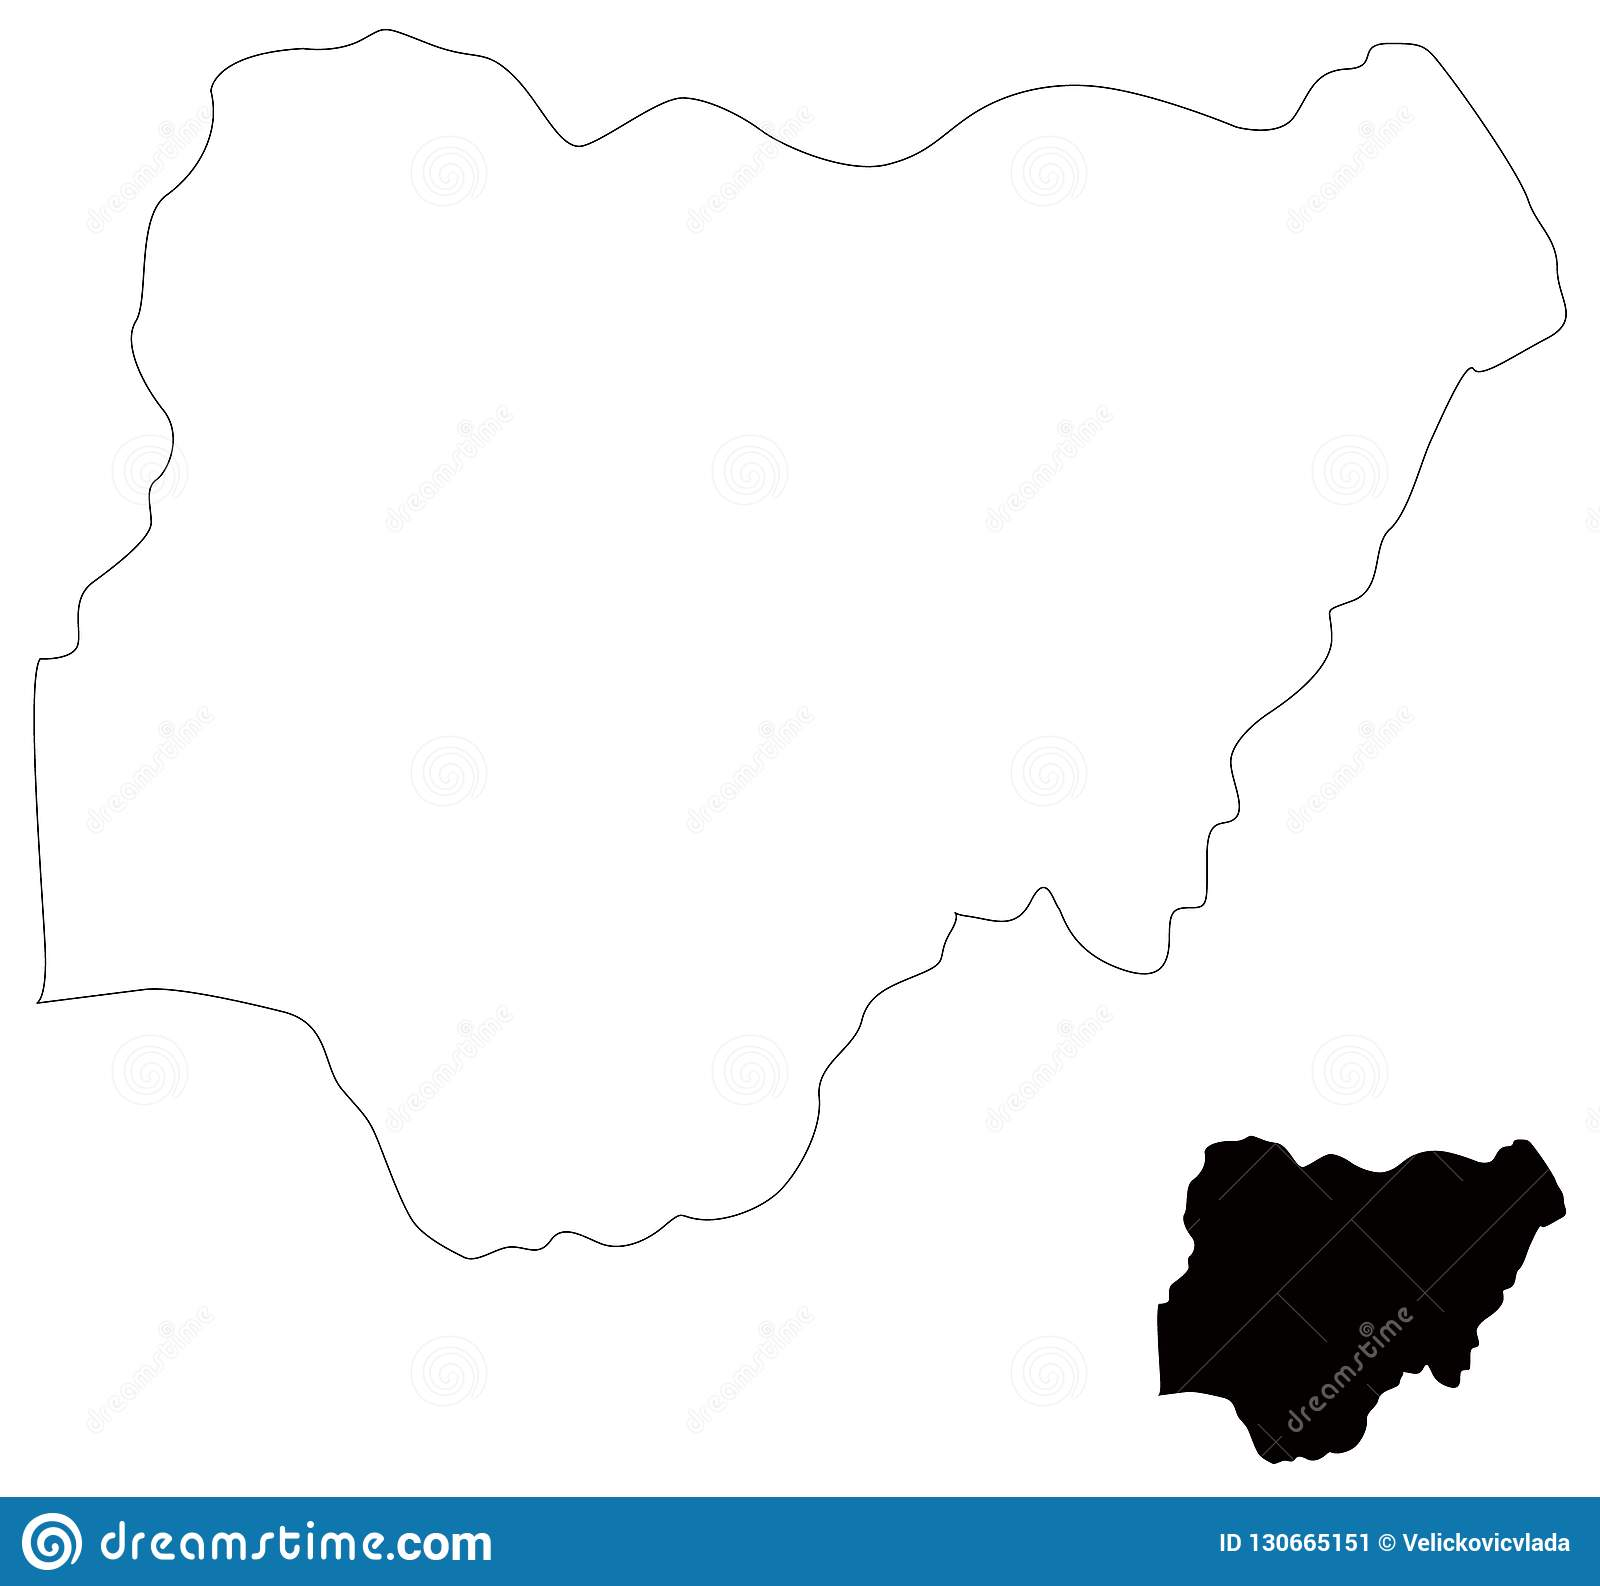 Africa Map Nigeria.Nigeria Map Country Between Central And West Africa Stock Vector